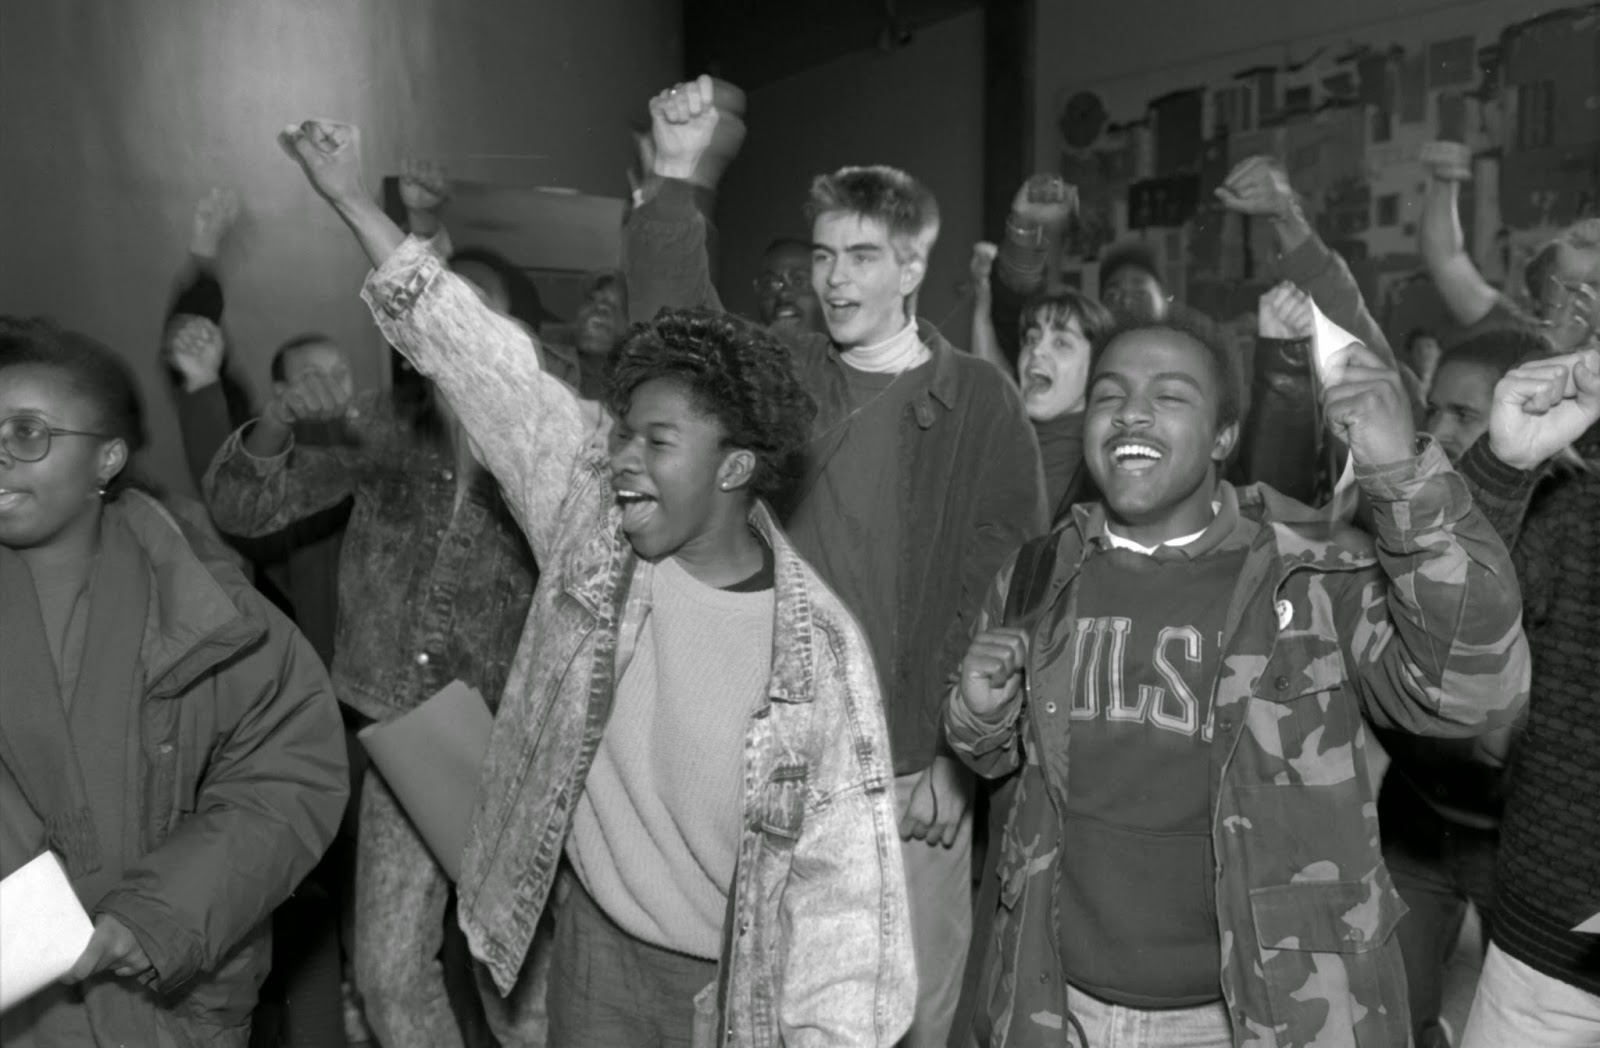 A black and white photograph of a group of smiling students with raised fists.